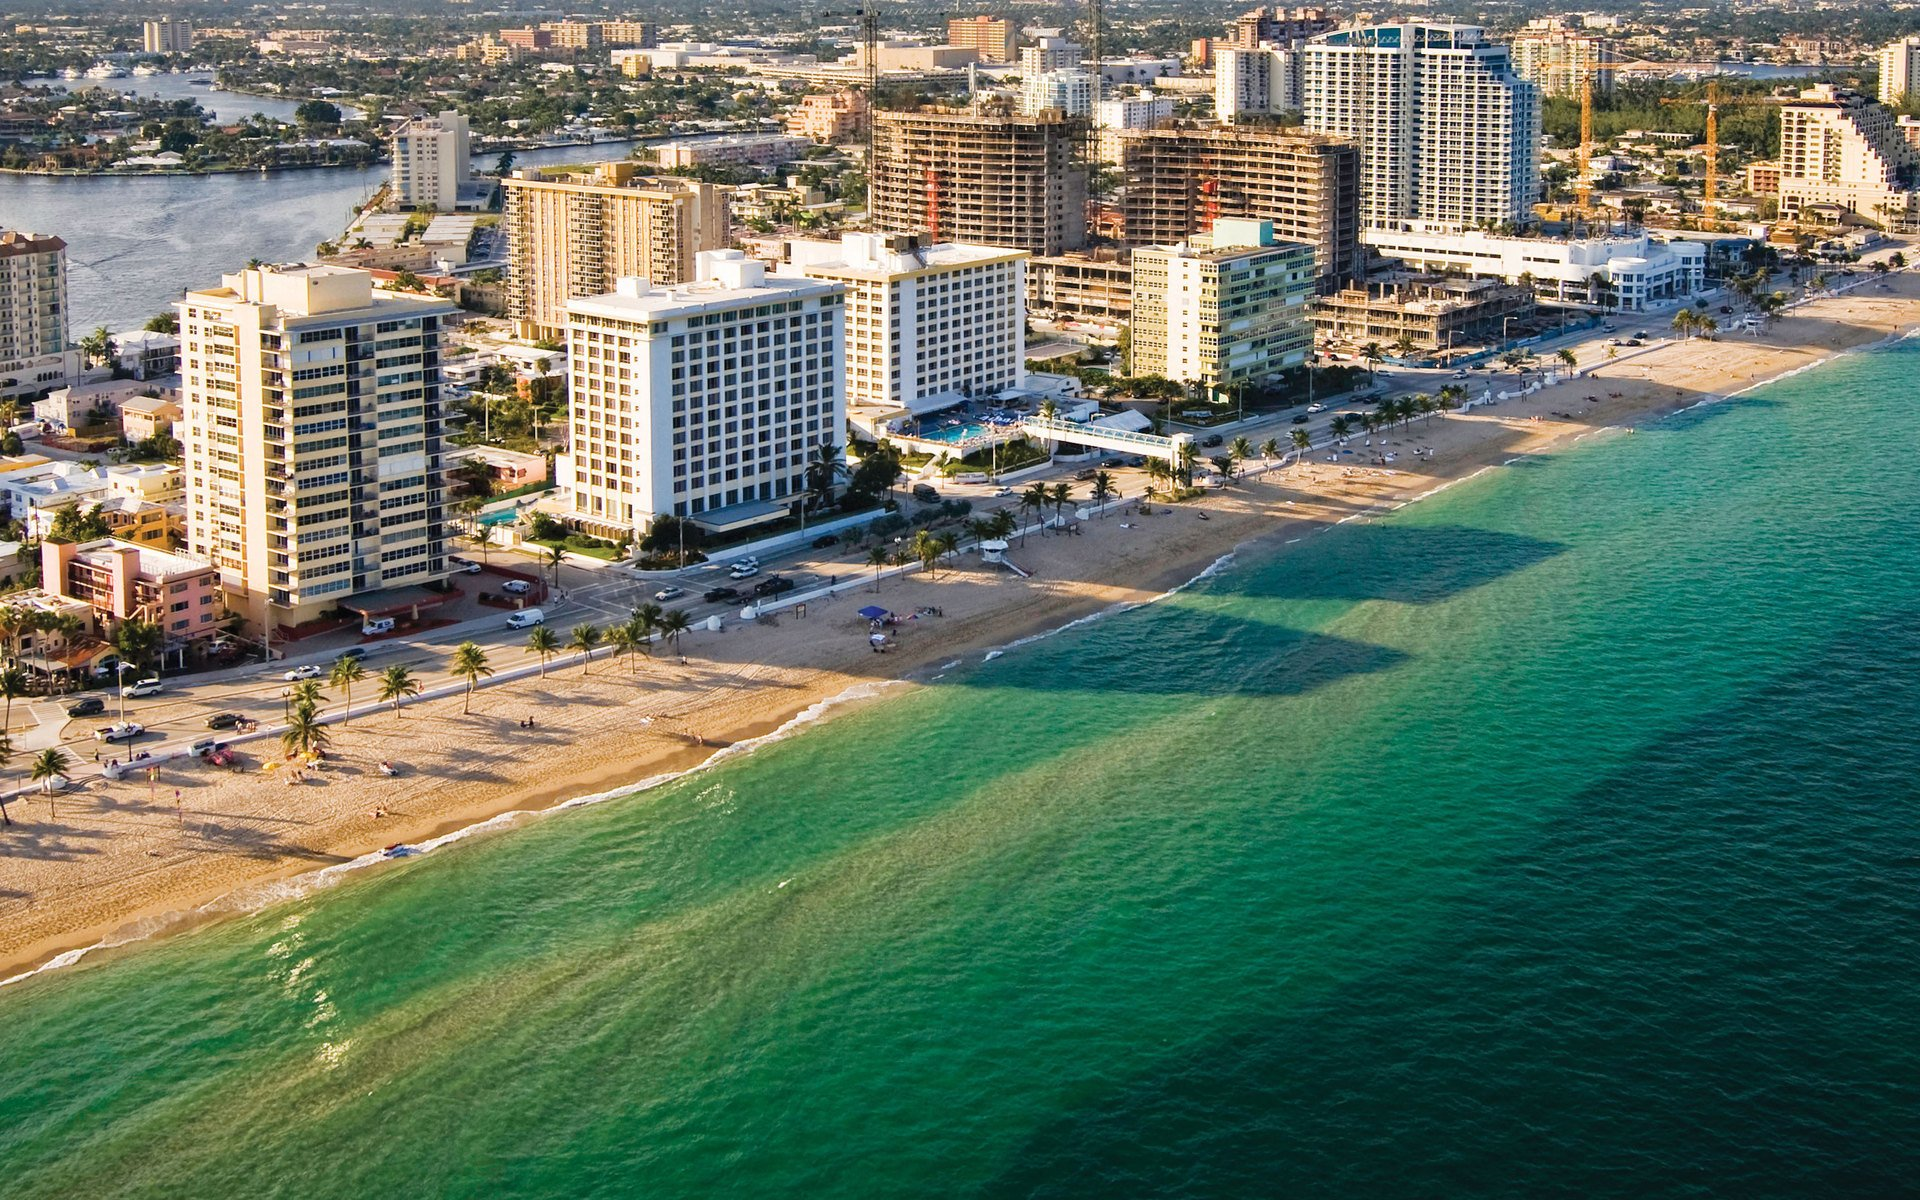 Easter Flights to Fort Lauderdale, Starting from $79, Call Now +1-855-948-6886